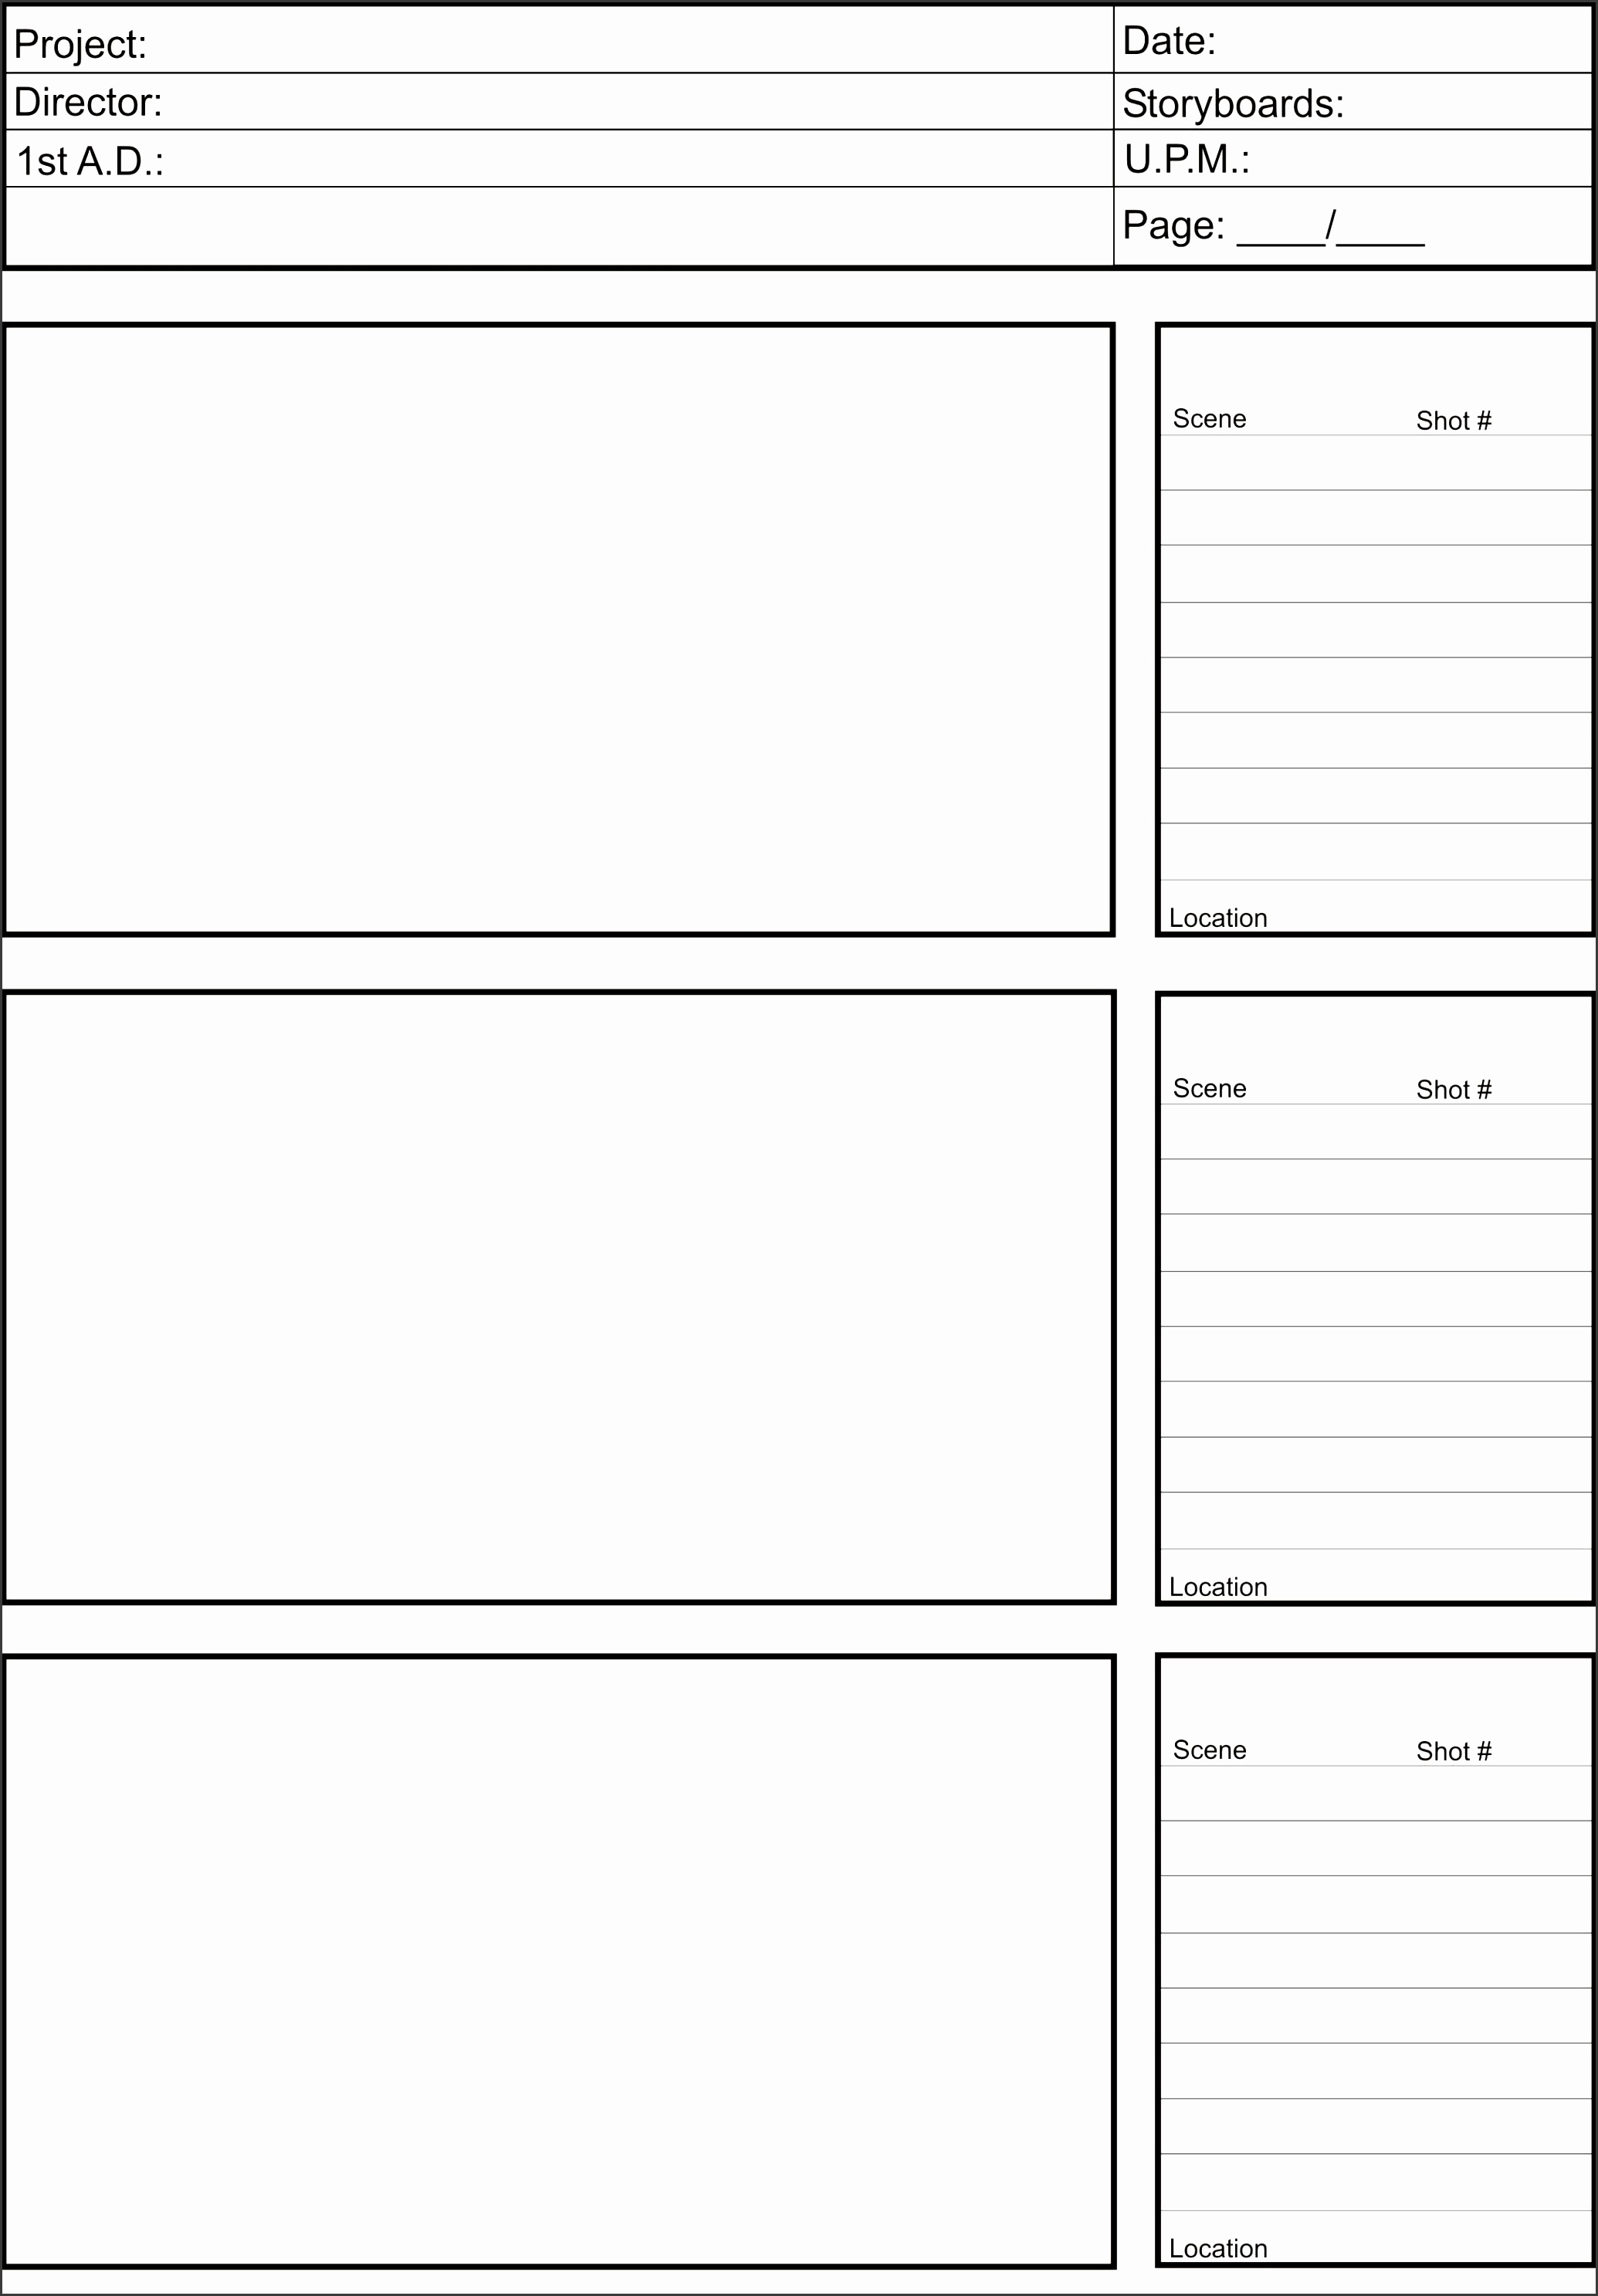 printable storyboard templates word layouts share your creative vision with your crew using this free storyboard template